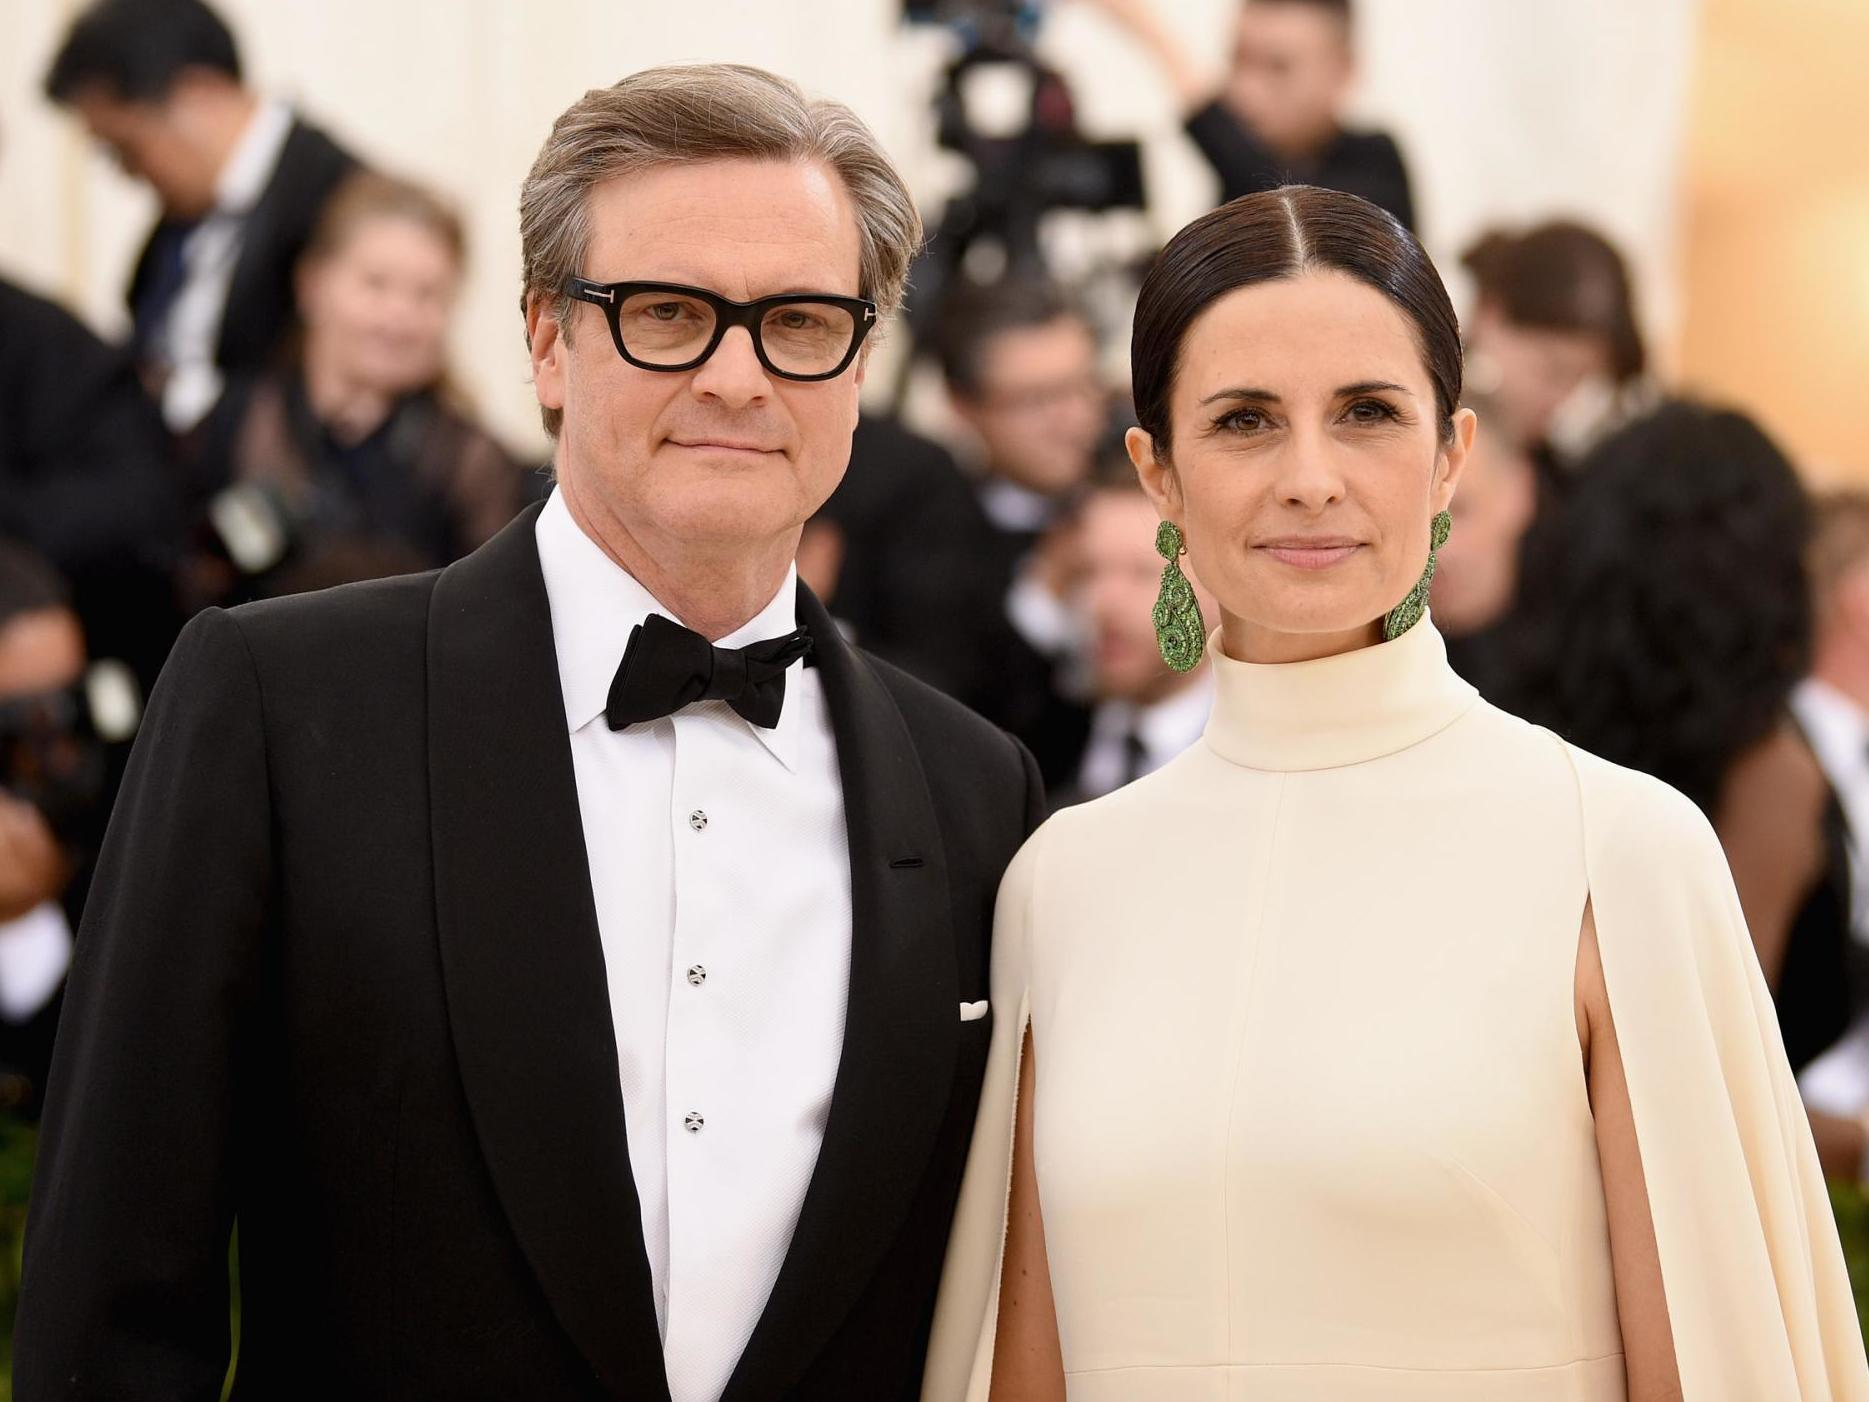 Colin Firth announces split from wife Livia Giuggioli after 22 years of marriage